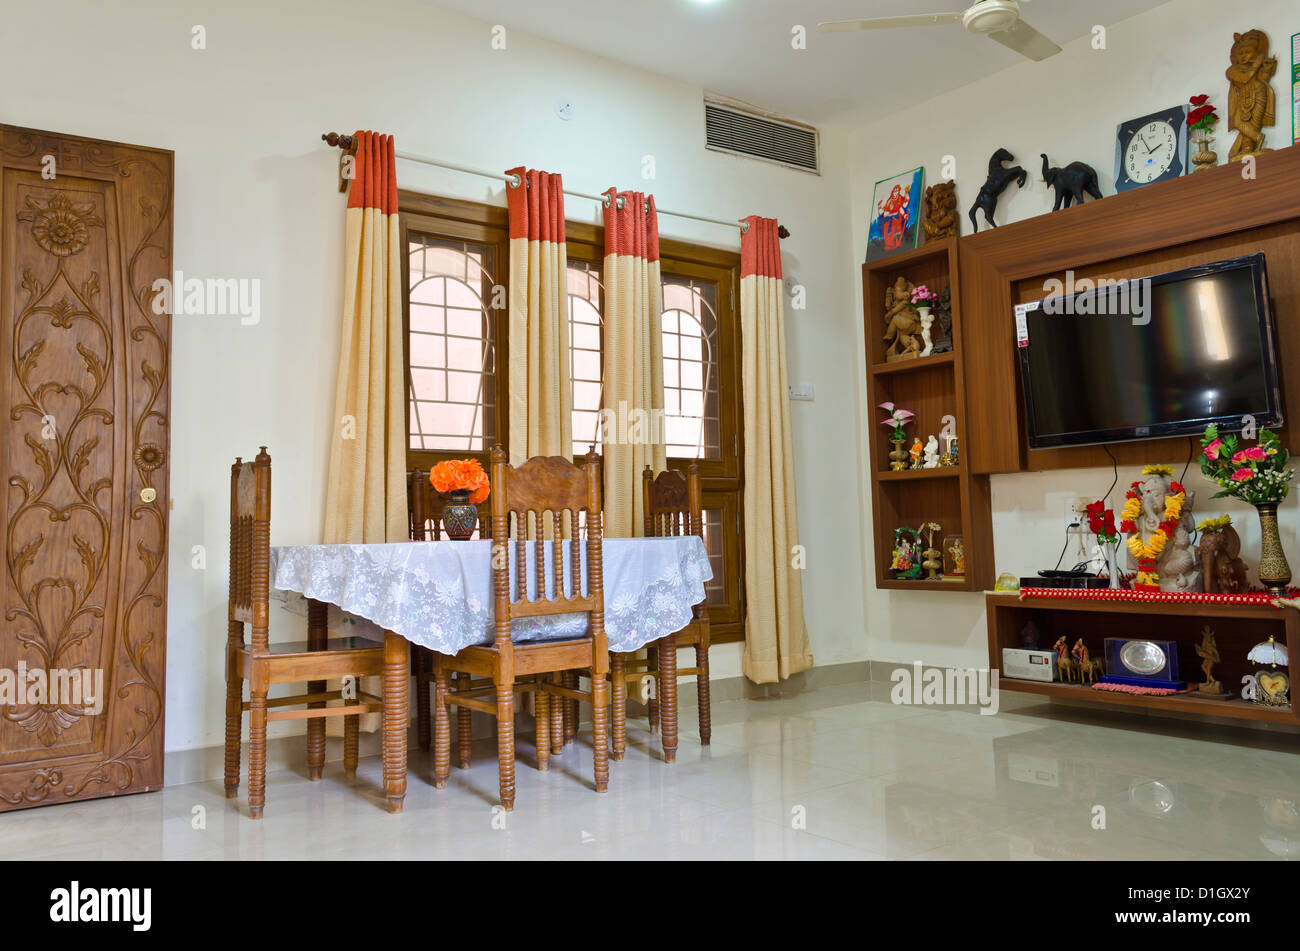 Chennai 2018 with Photos Top 20 Places to Stay   Airbnb